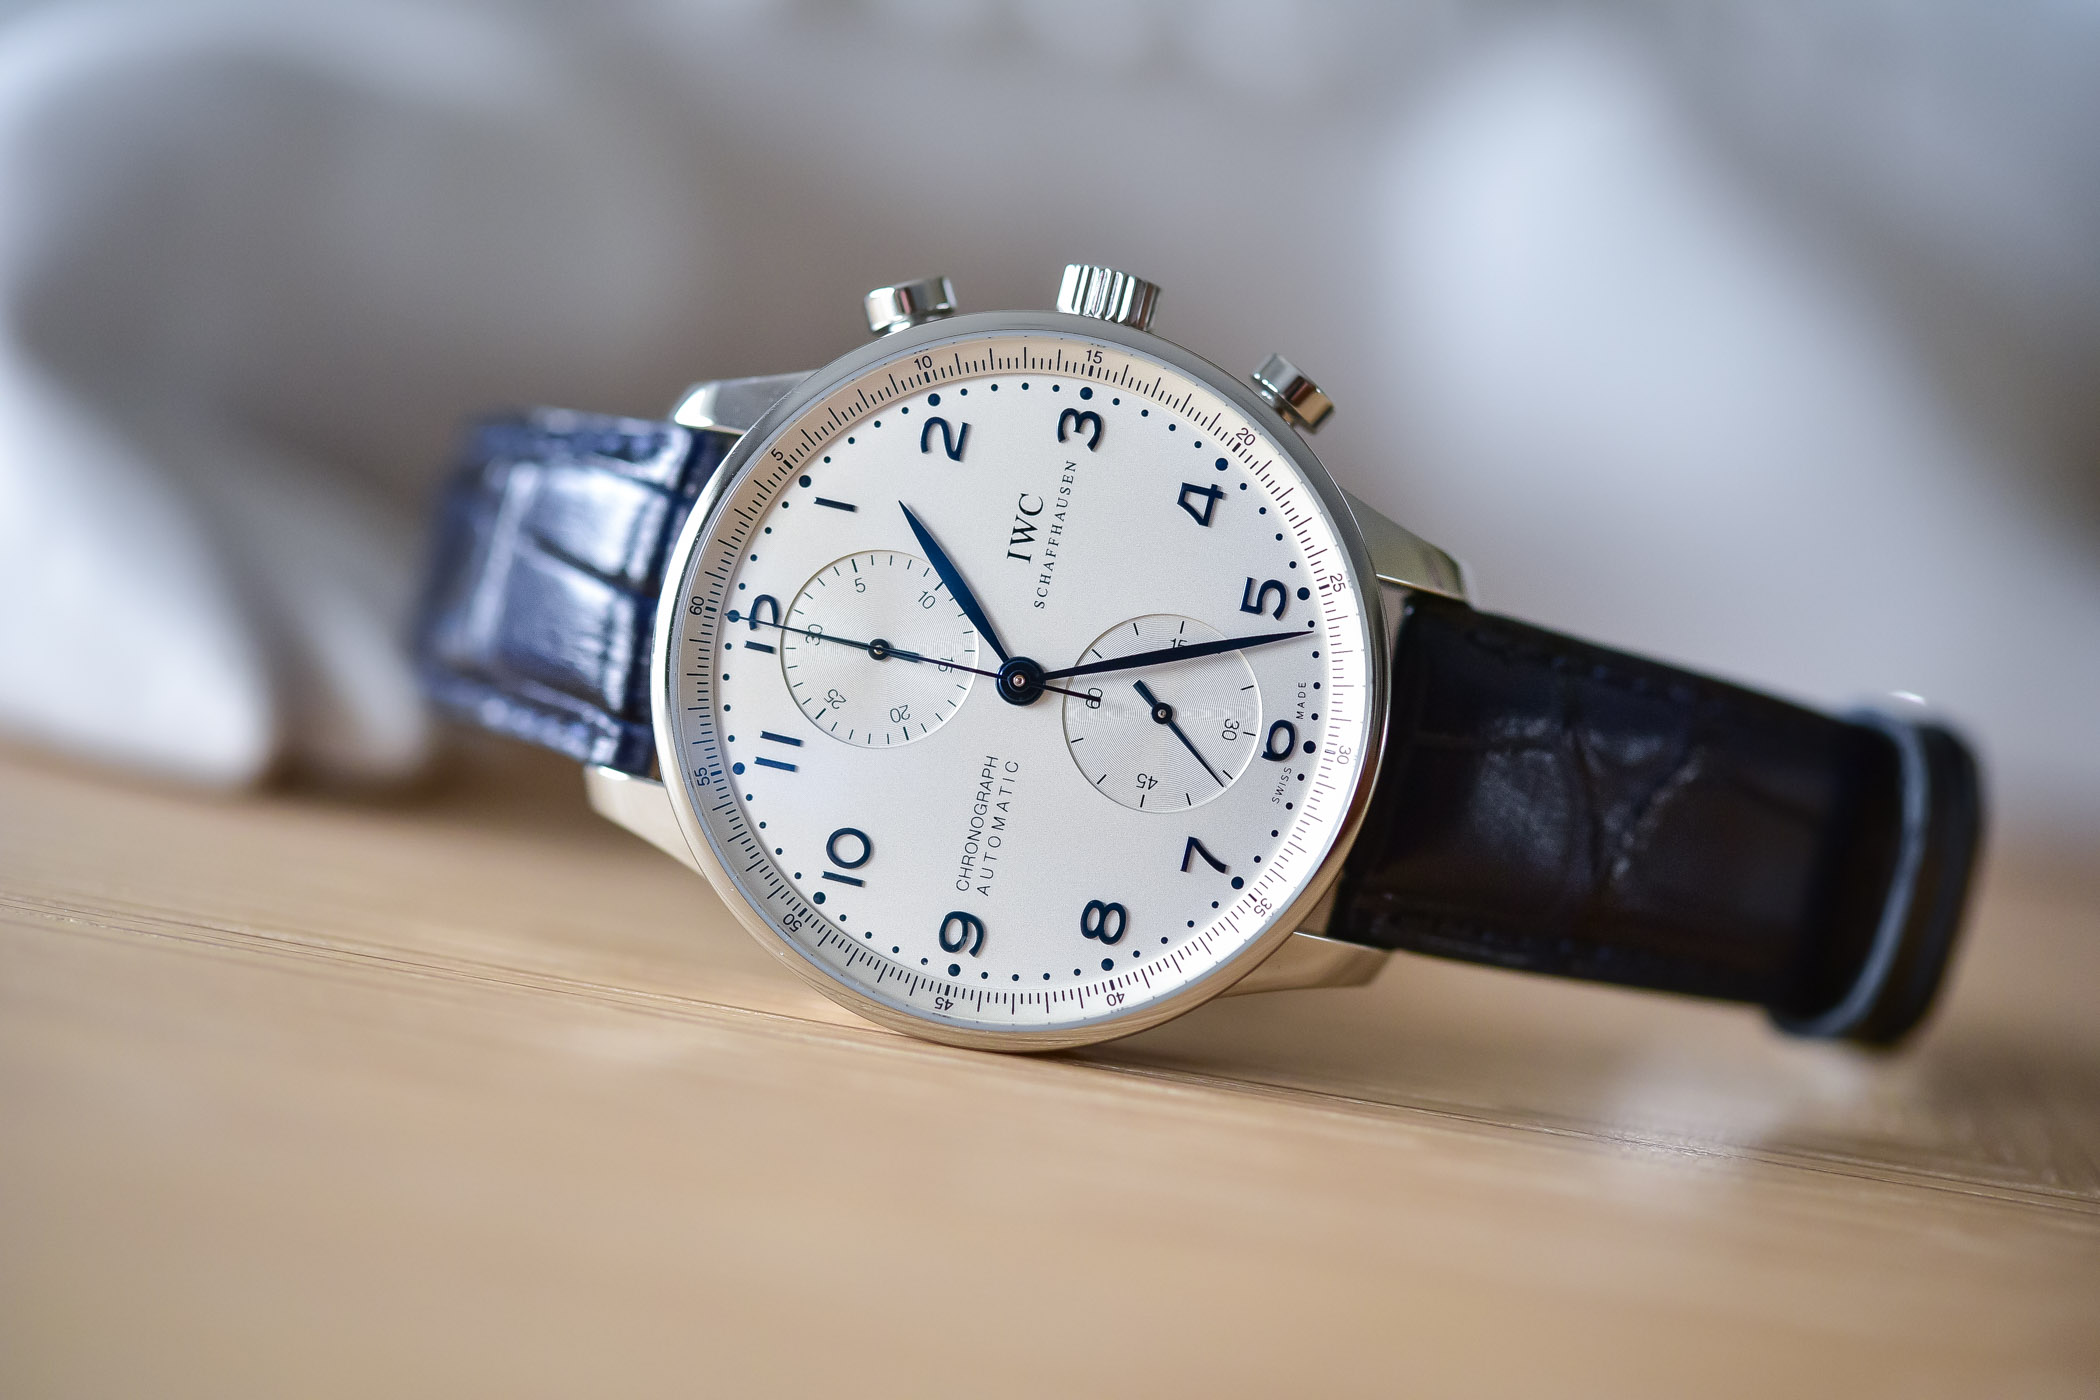 Iwc Replica Top Swiss Iwc Portugieser Chronograph 3714 Replica Watches On Sale